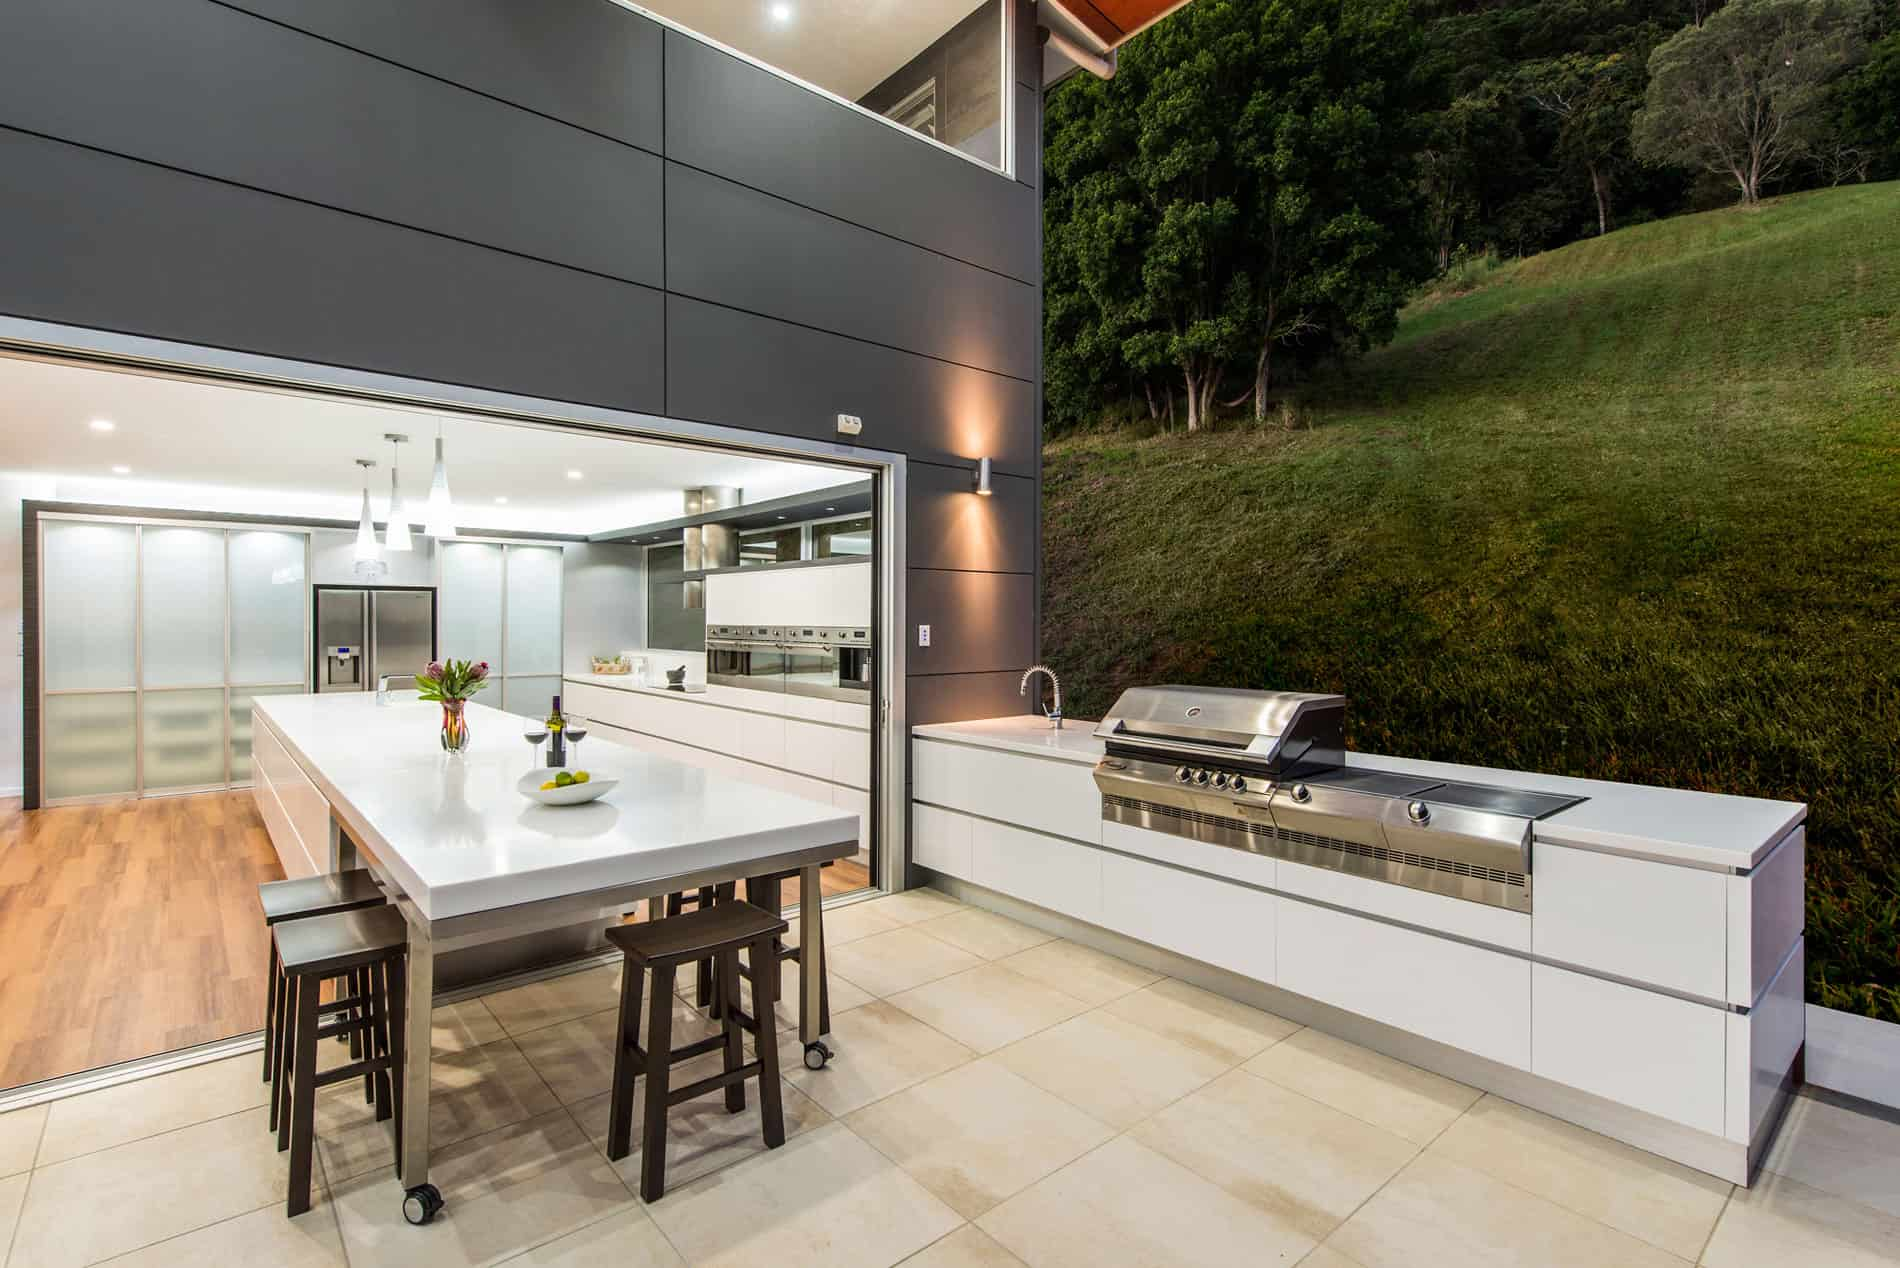 outdoor kitchen ideas that will make you drool. Black Bedroom Furniture Sets. Home Design Ideas